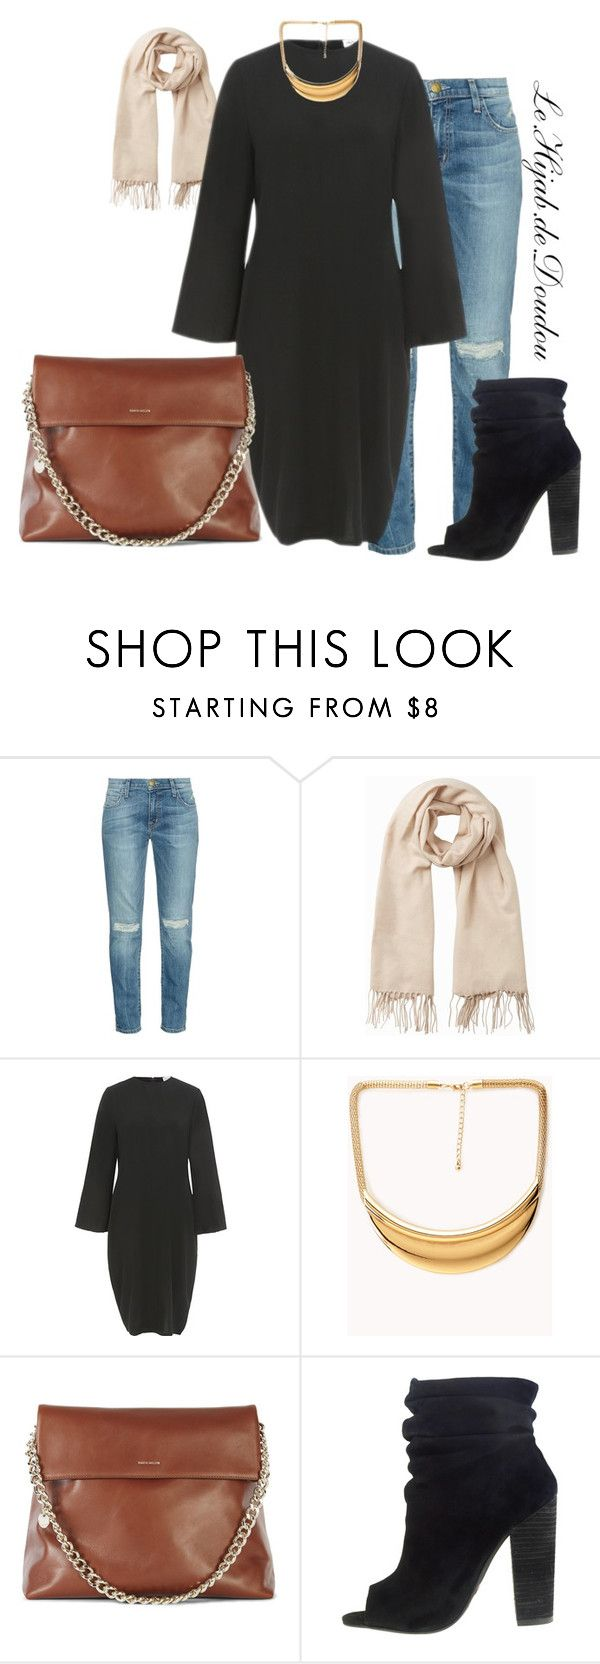 """""""Hijab Outfit"""" by le-hijab-de-doudou ❤ liked on Polyvore featuring Current/Elliott, Vero Moda, Forever 21 and Kristin Cavallari"""